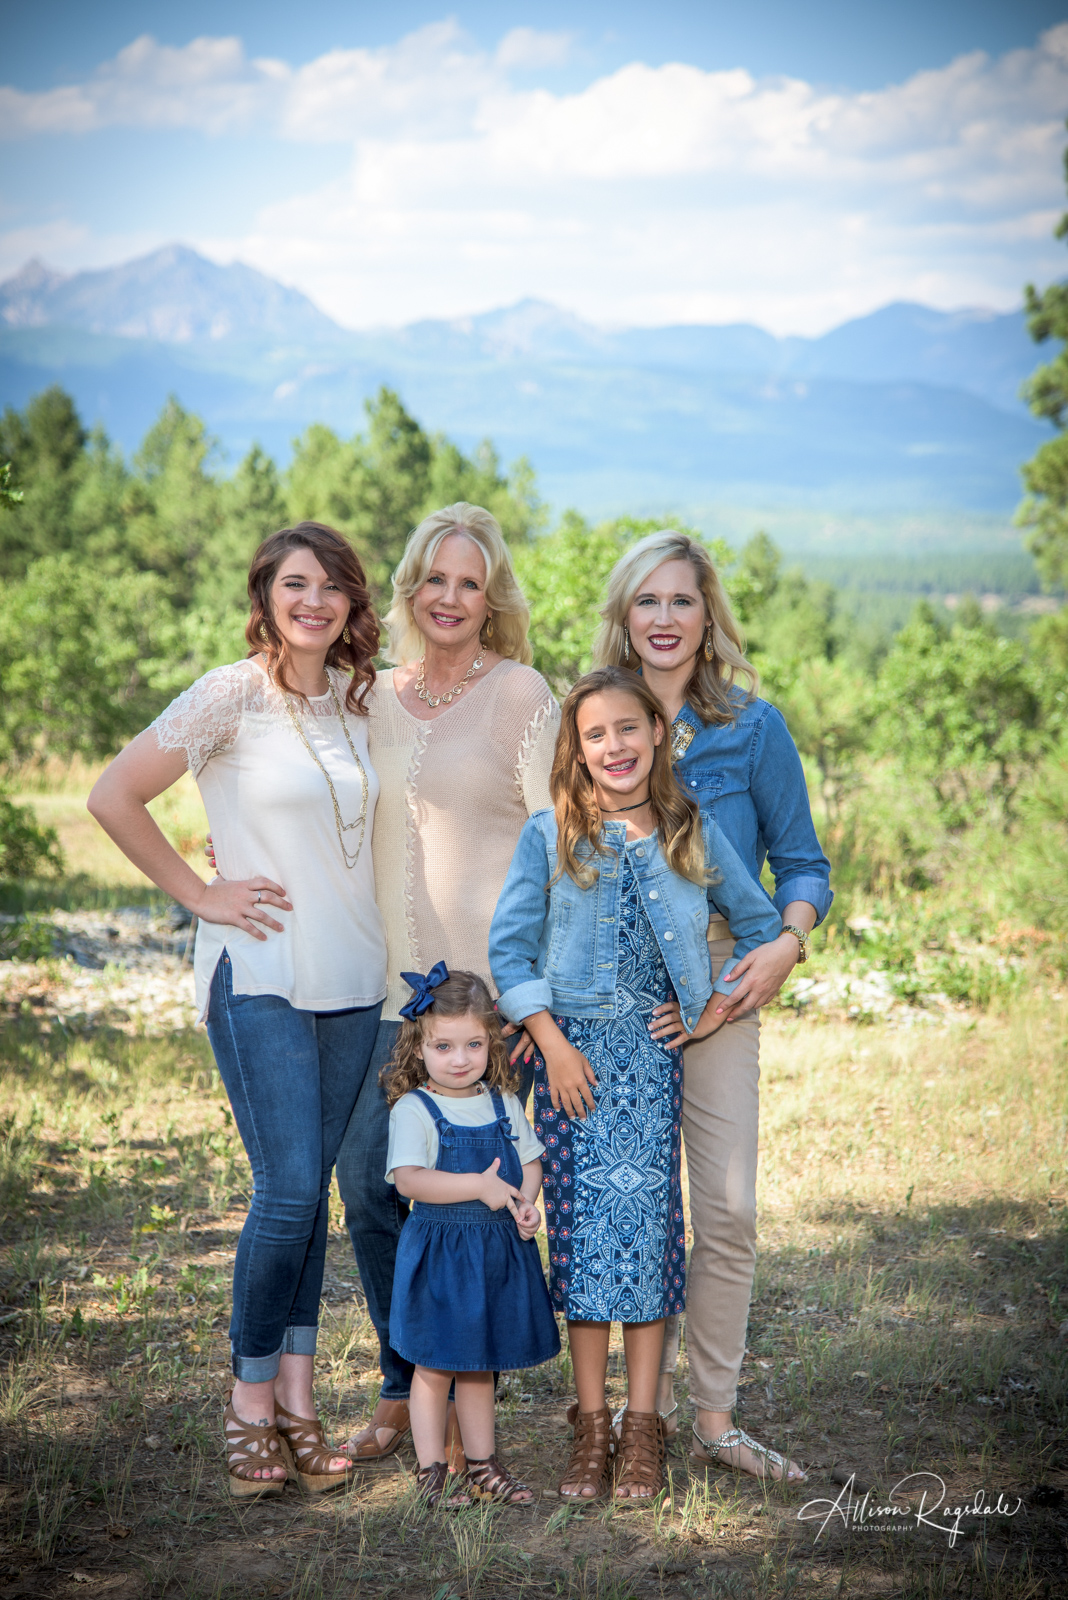 professional family portraits in Durango Colorado  by Allison Ragsdale Photography